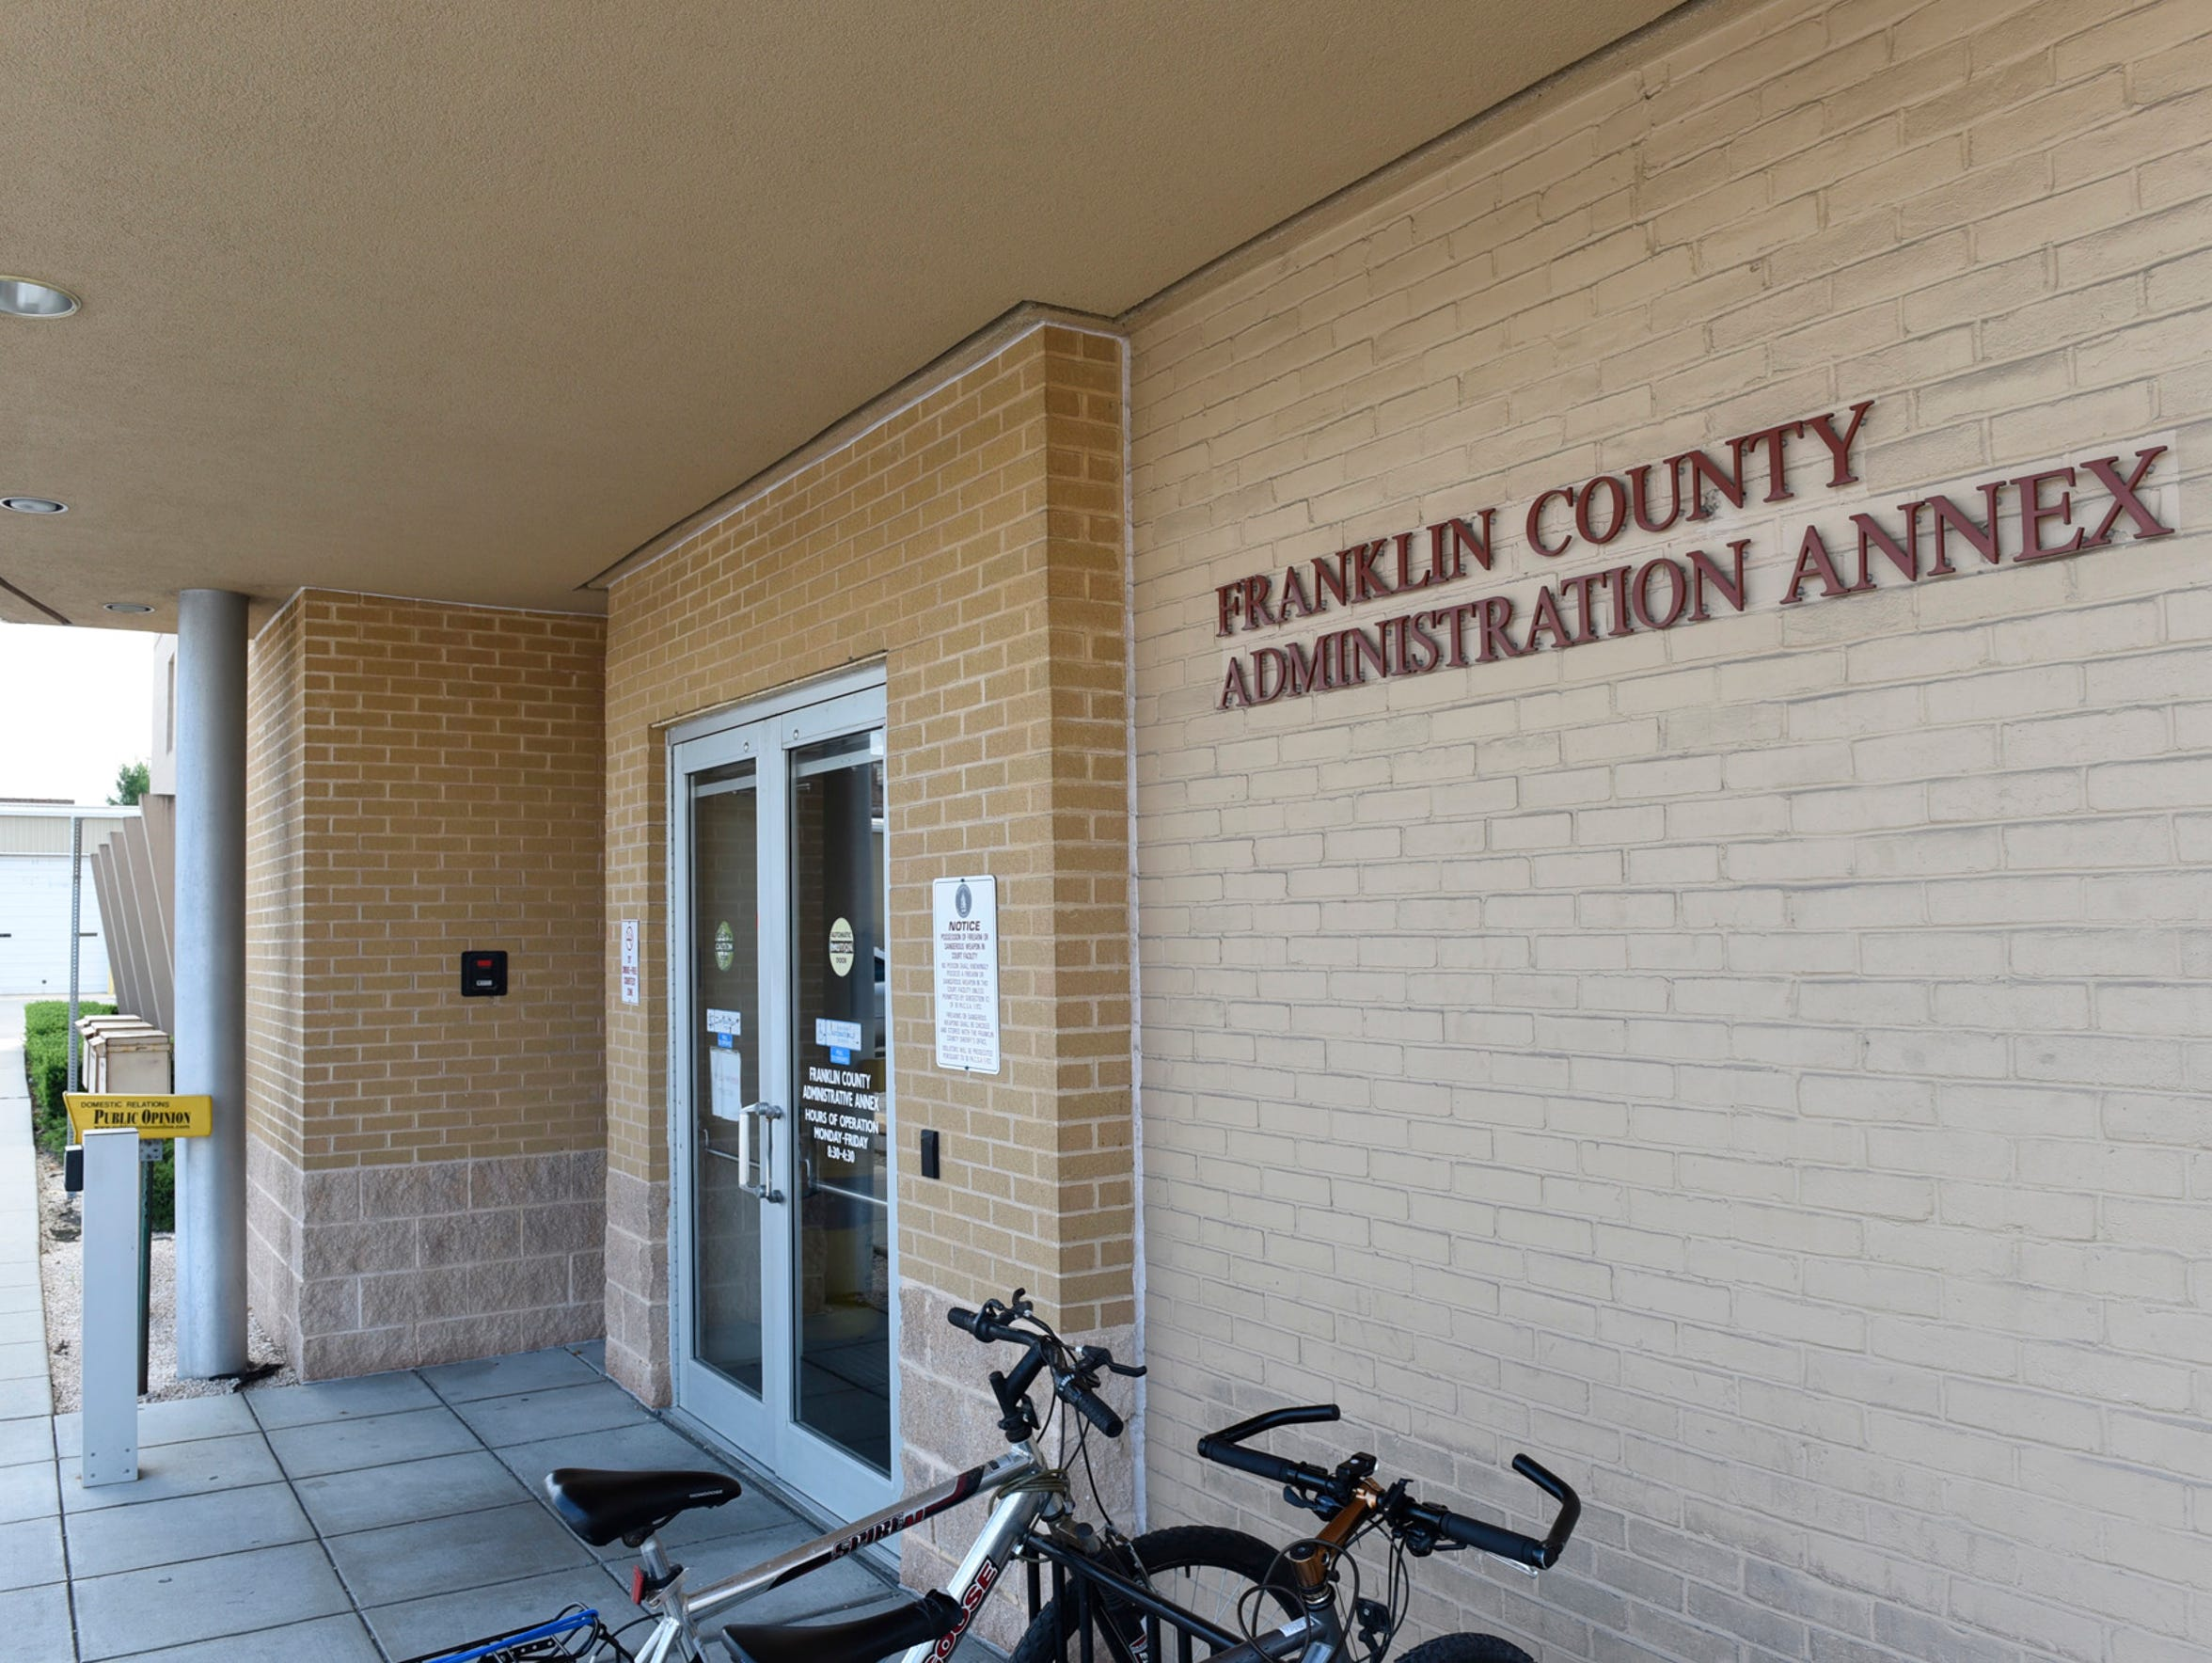 The Franklin County Administration Annex is located